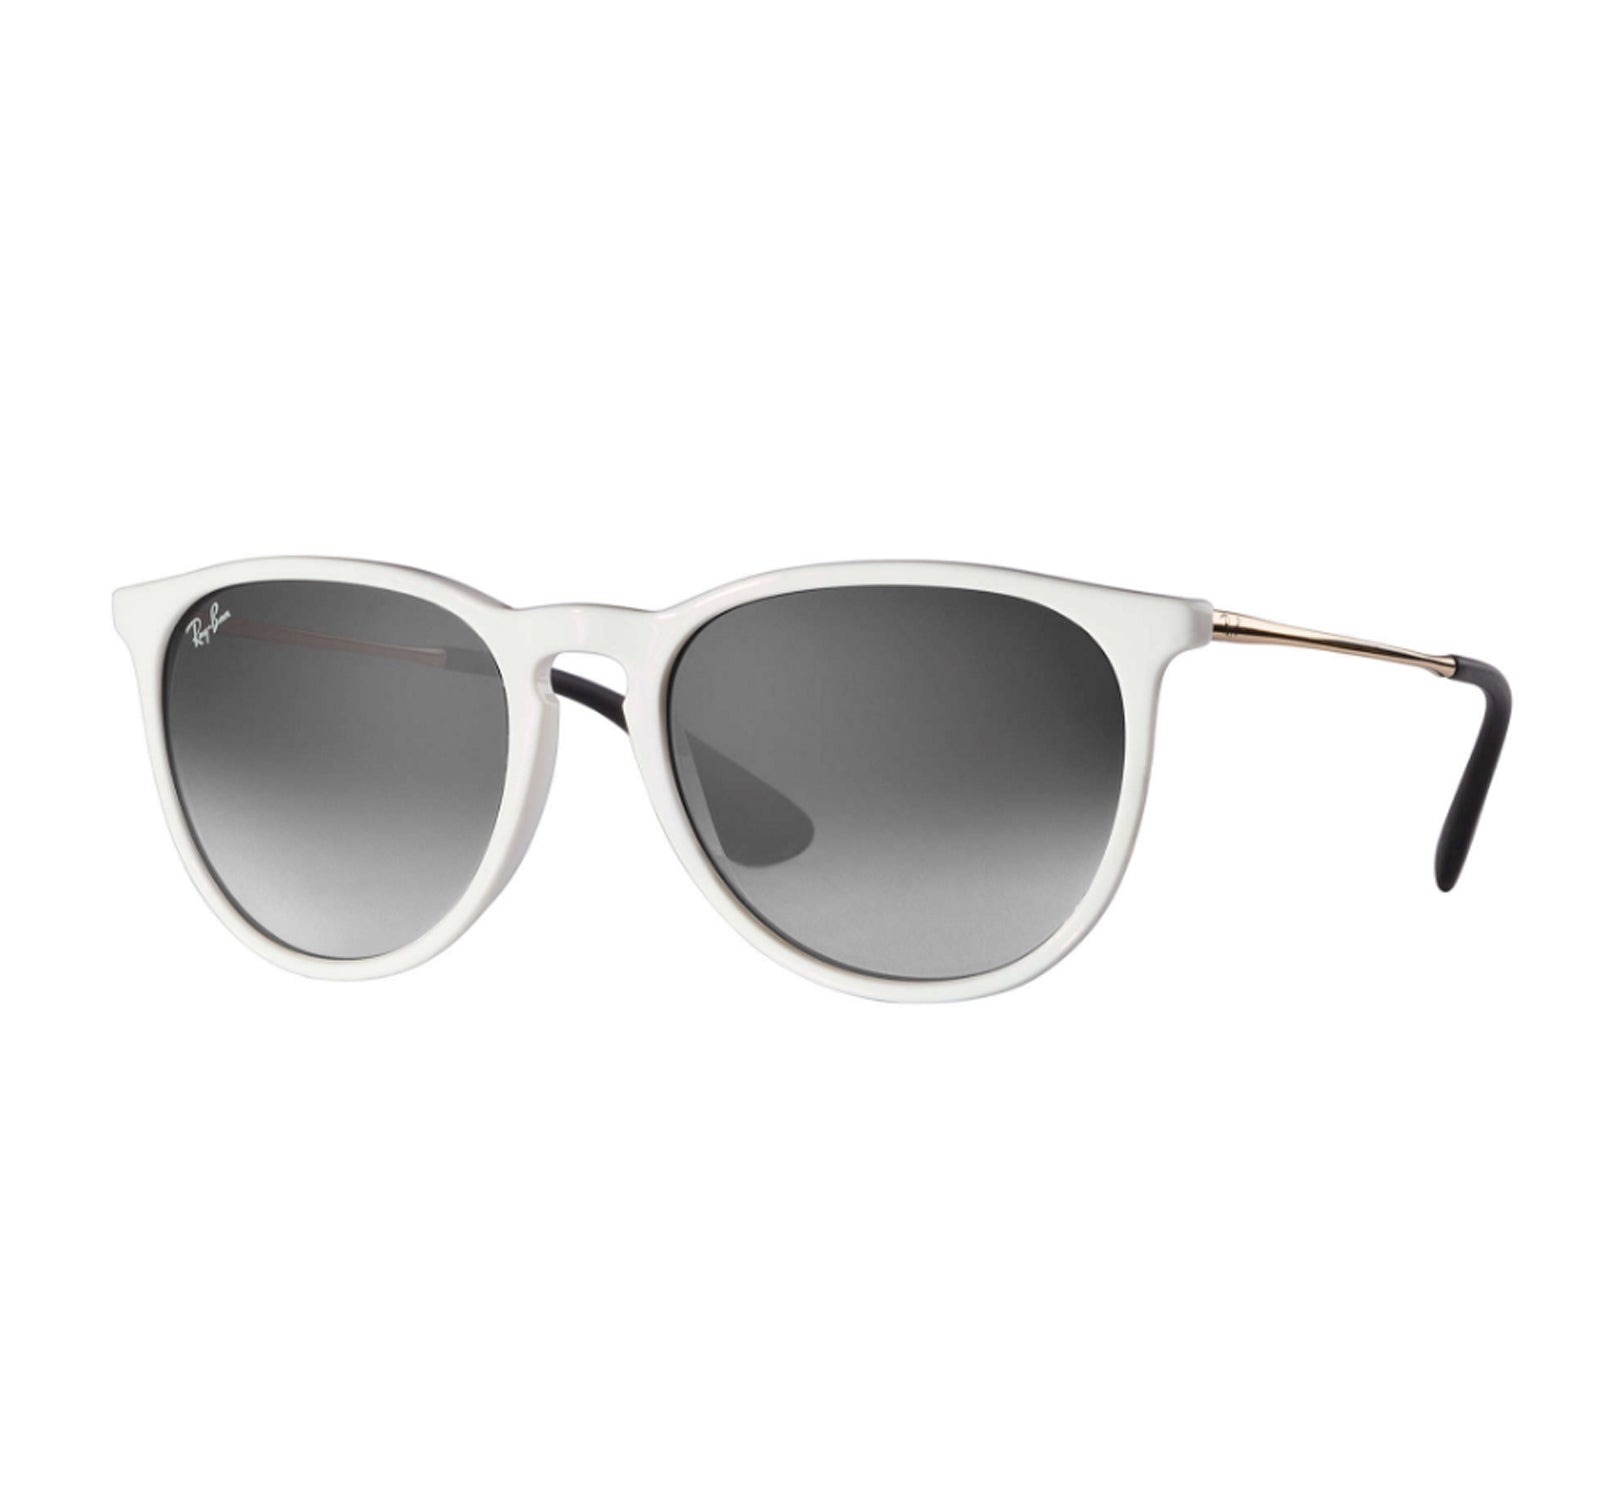 e183e8081b Ray-Ban Erika Women s Sunglasses - Shiny WhiteFrame Dark Grey Gradient -  Surf Station Store